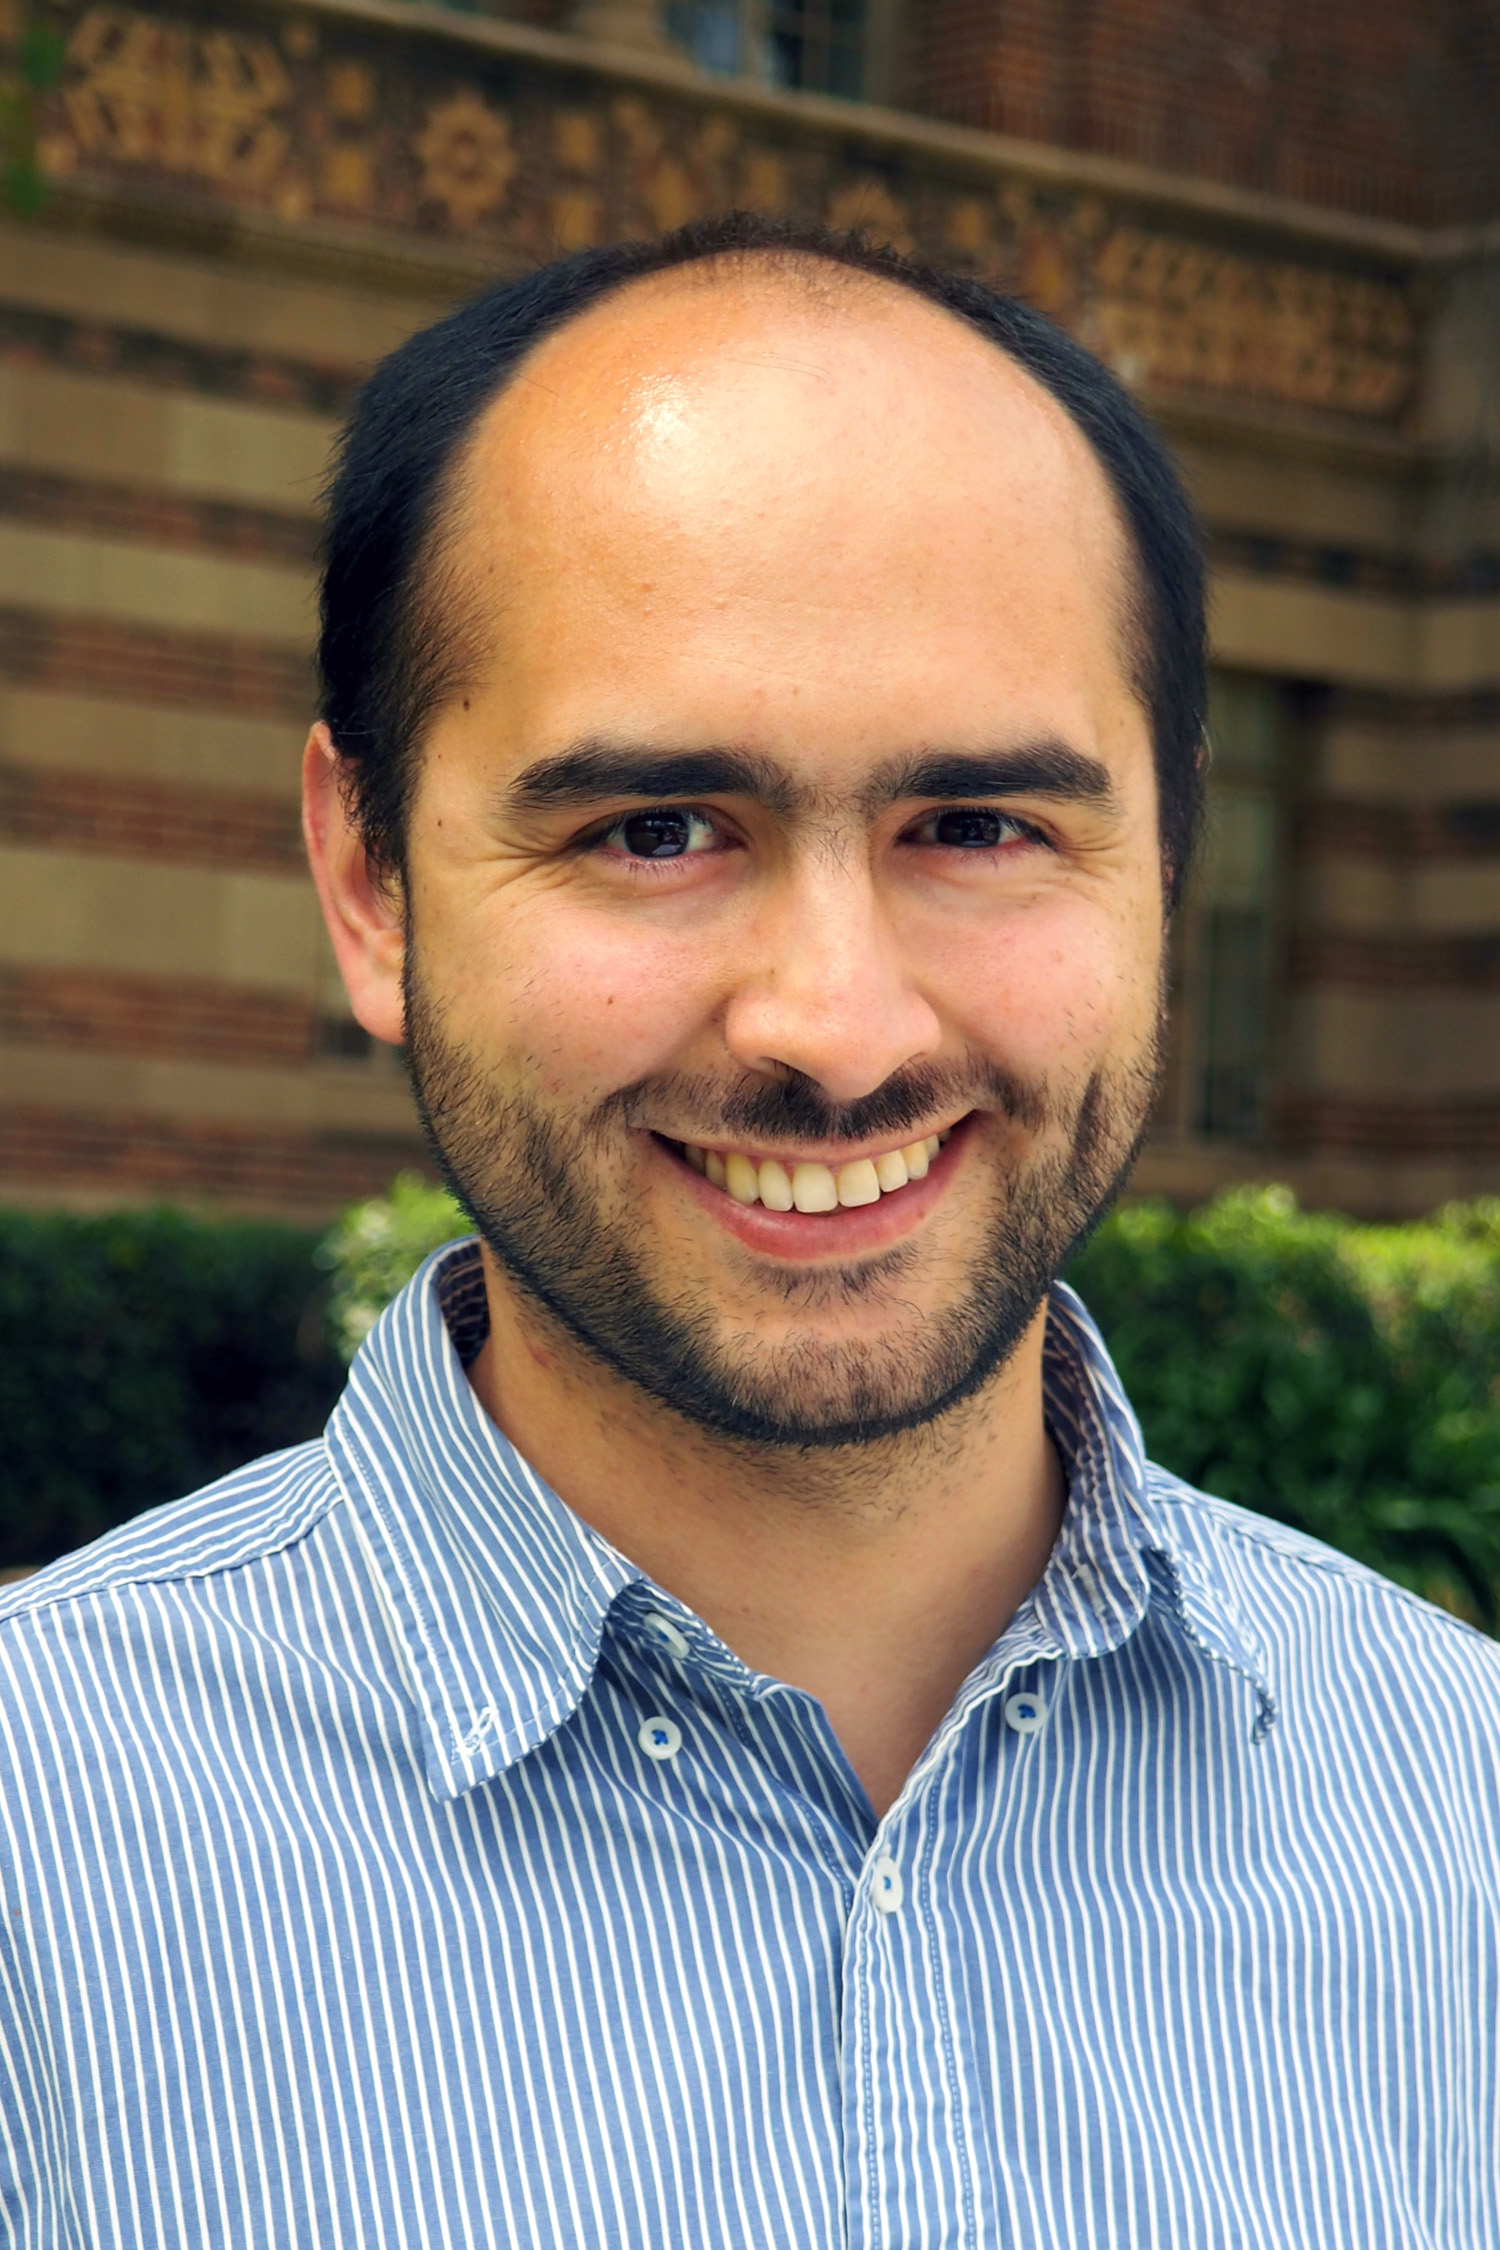 UCLA Assistant Professor of Atmospheric and Oceanic Sciences Pablo Saide